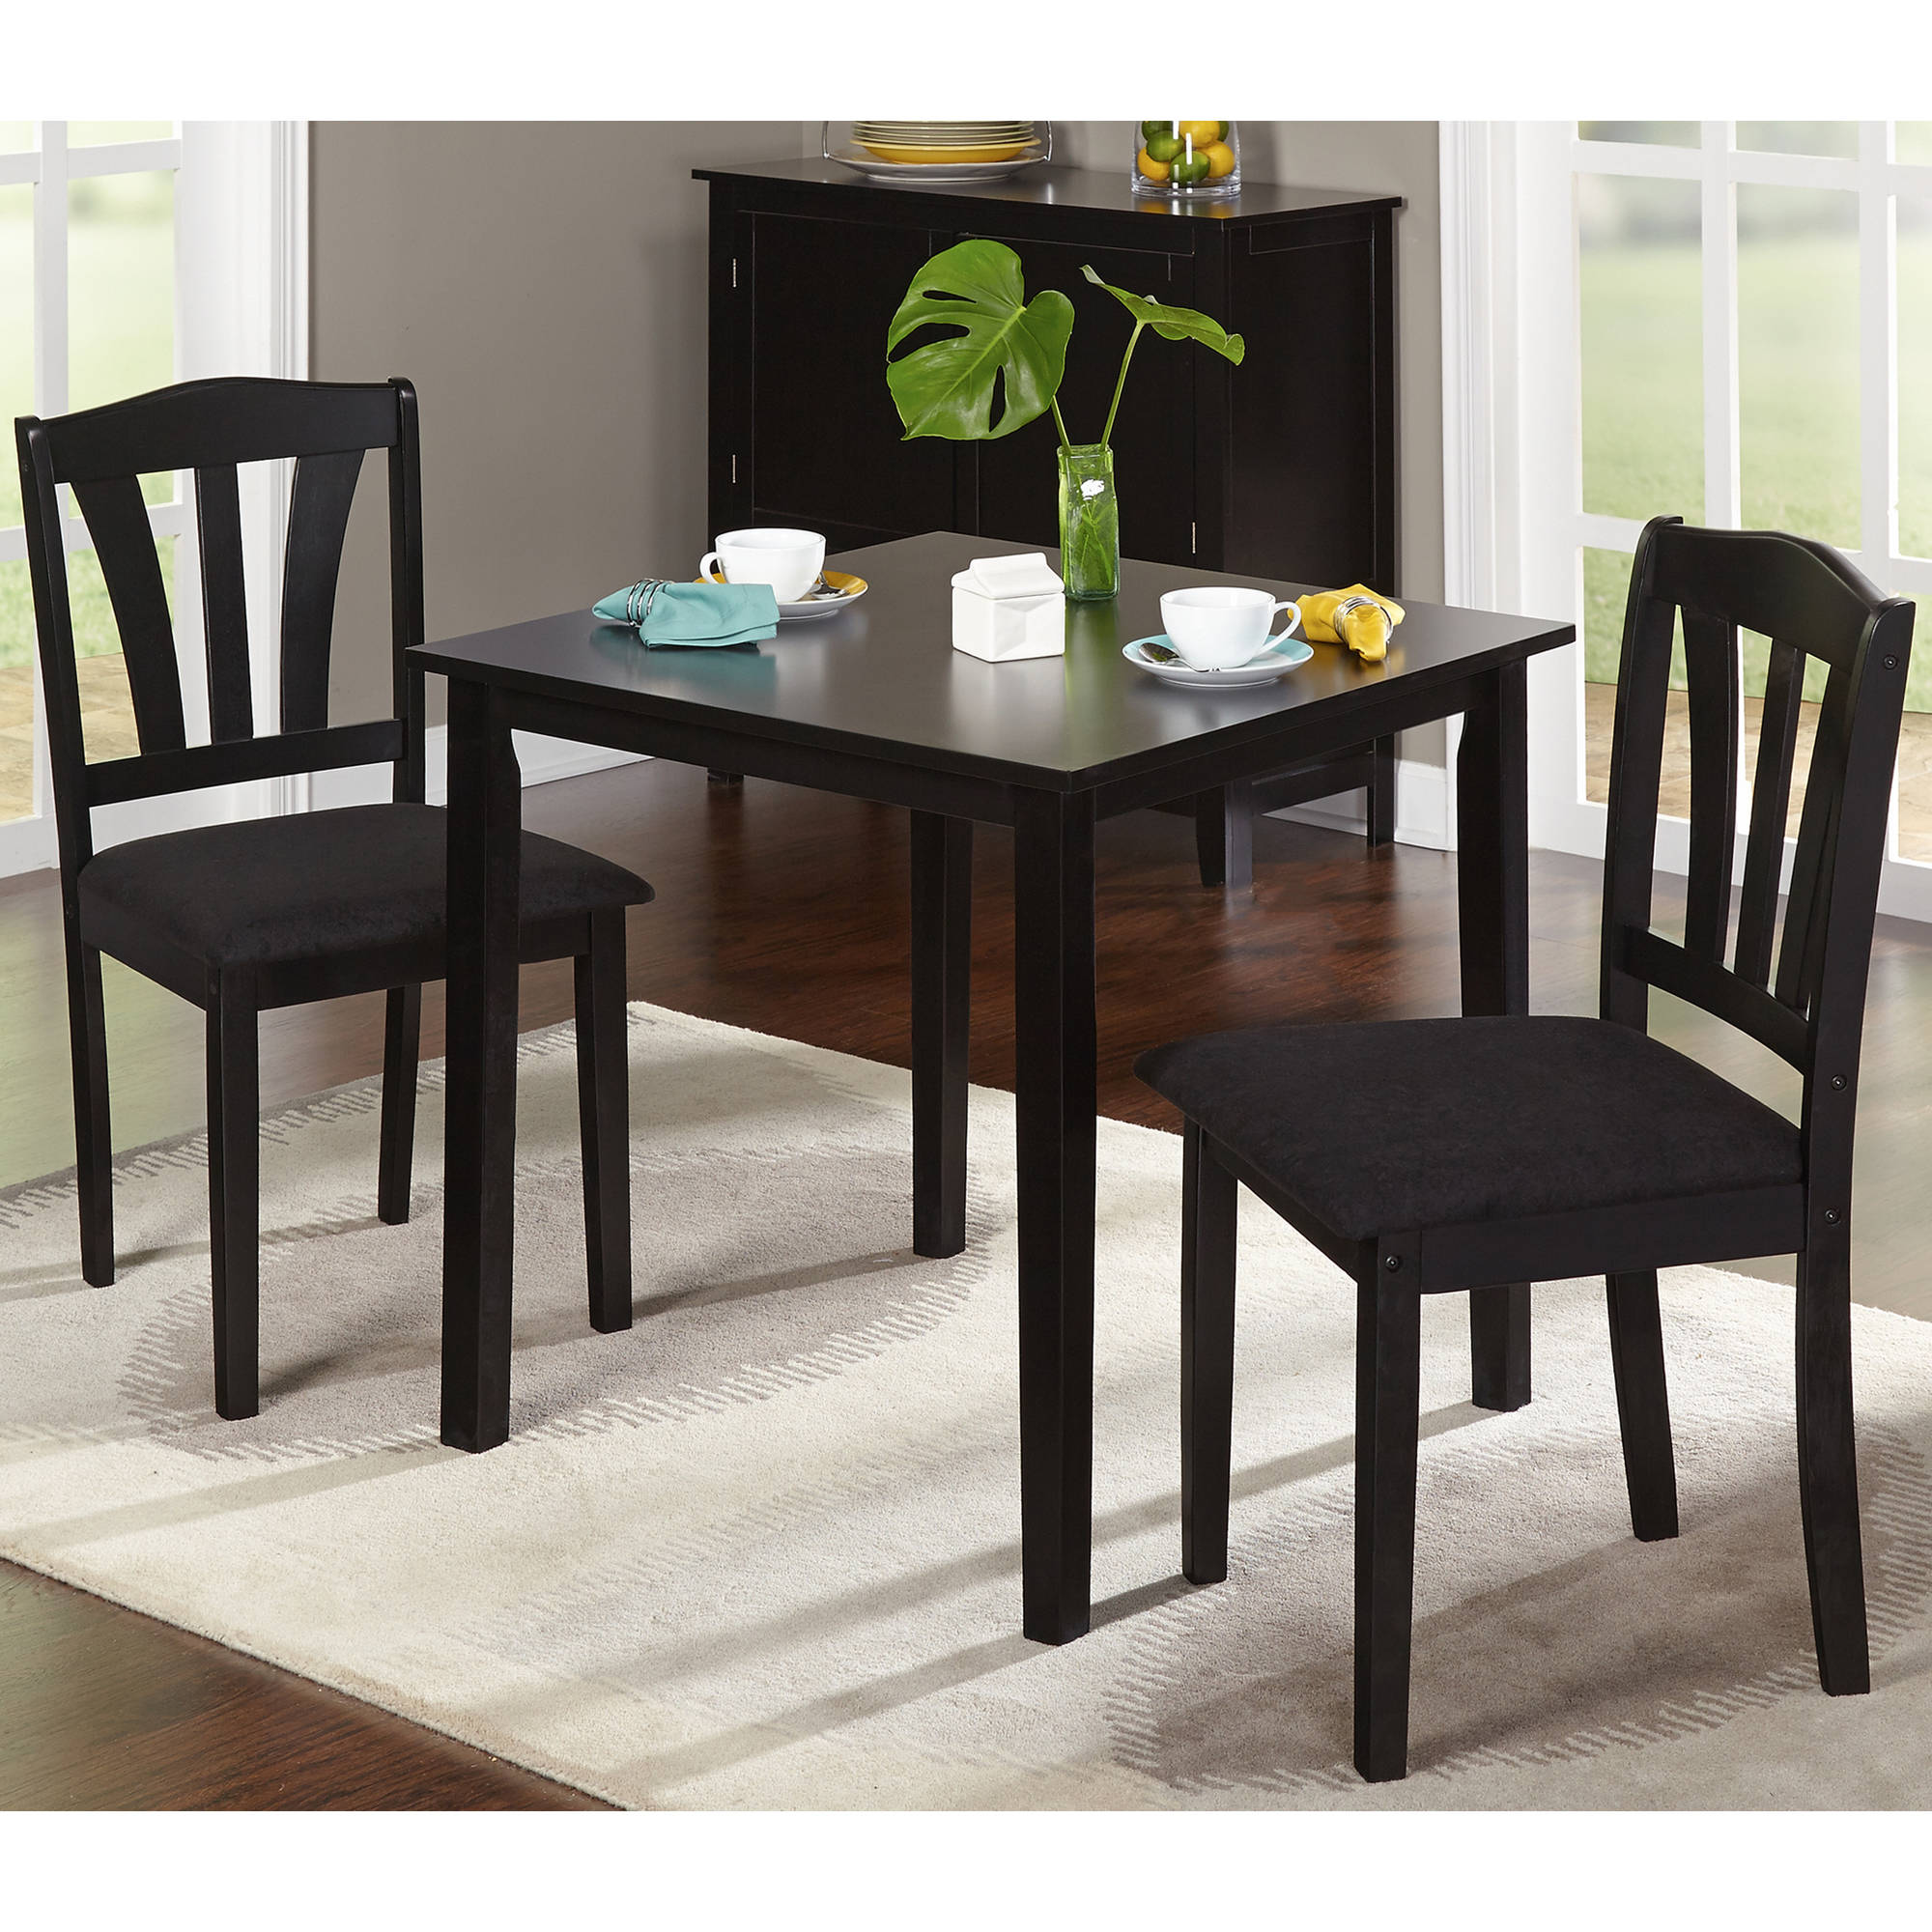 Charmant Metropolitan 3 Piece Dining Set, Multiple Finishes